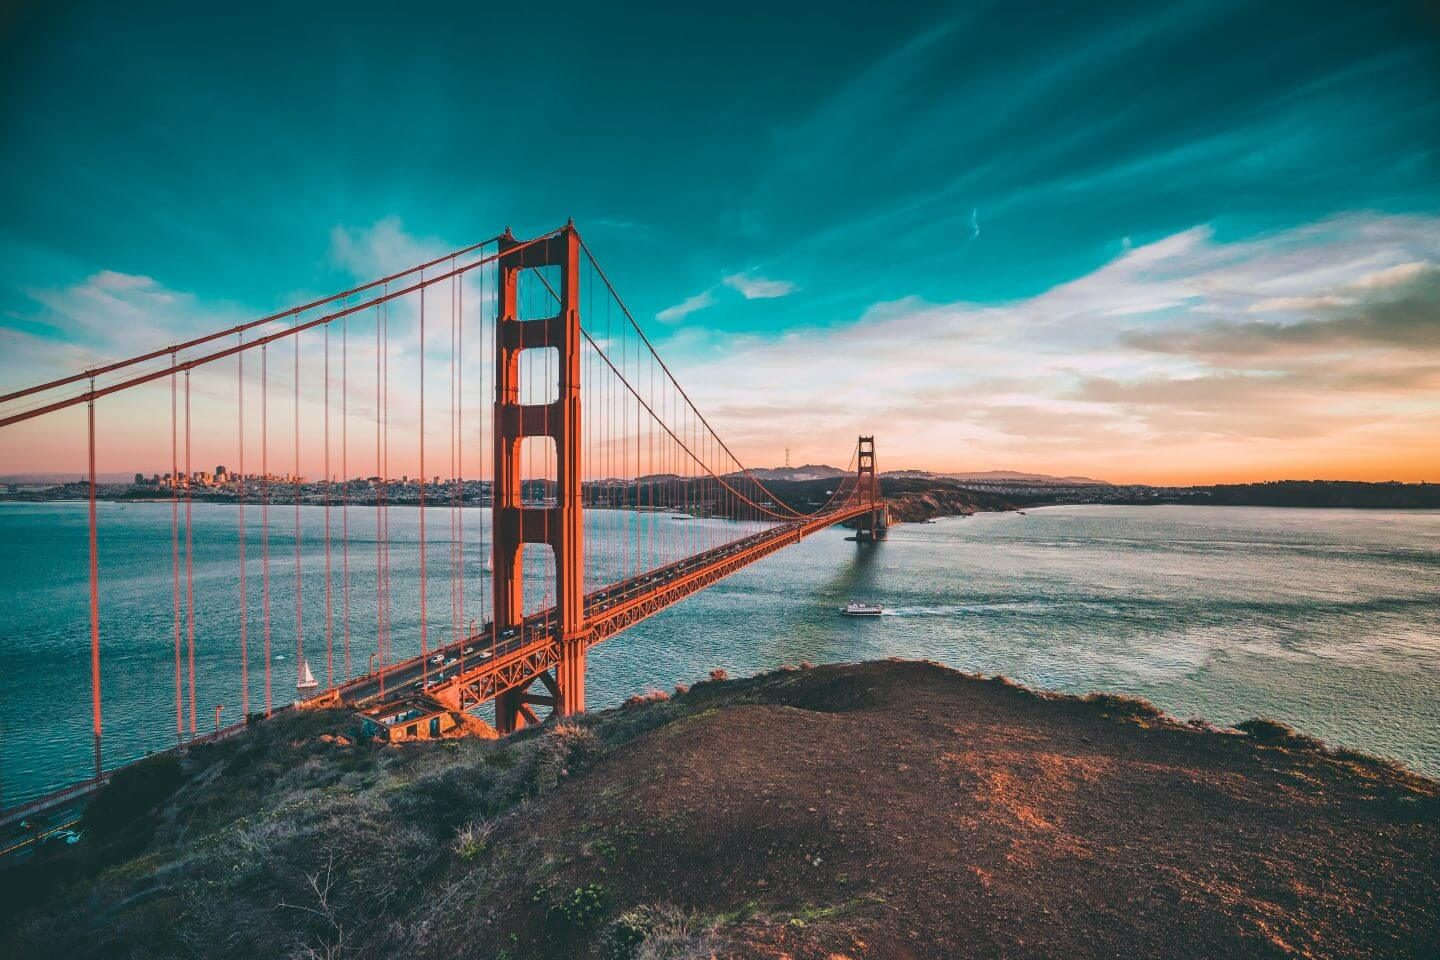 5 Simple Steps To Take Better Travel Pictures